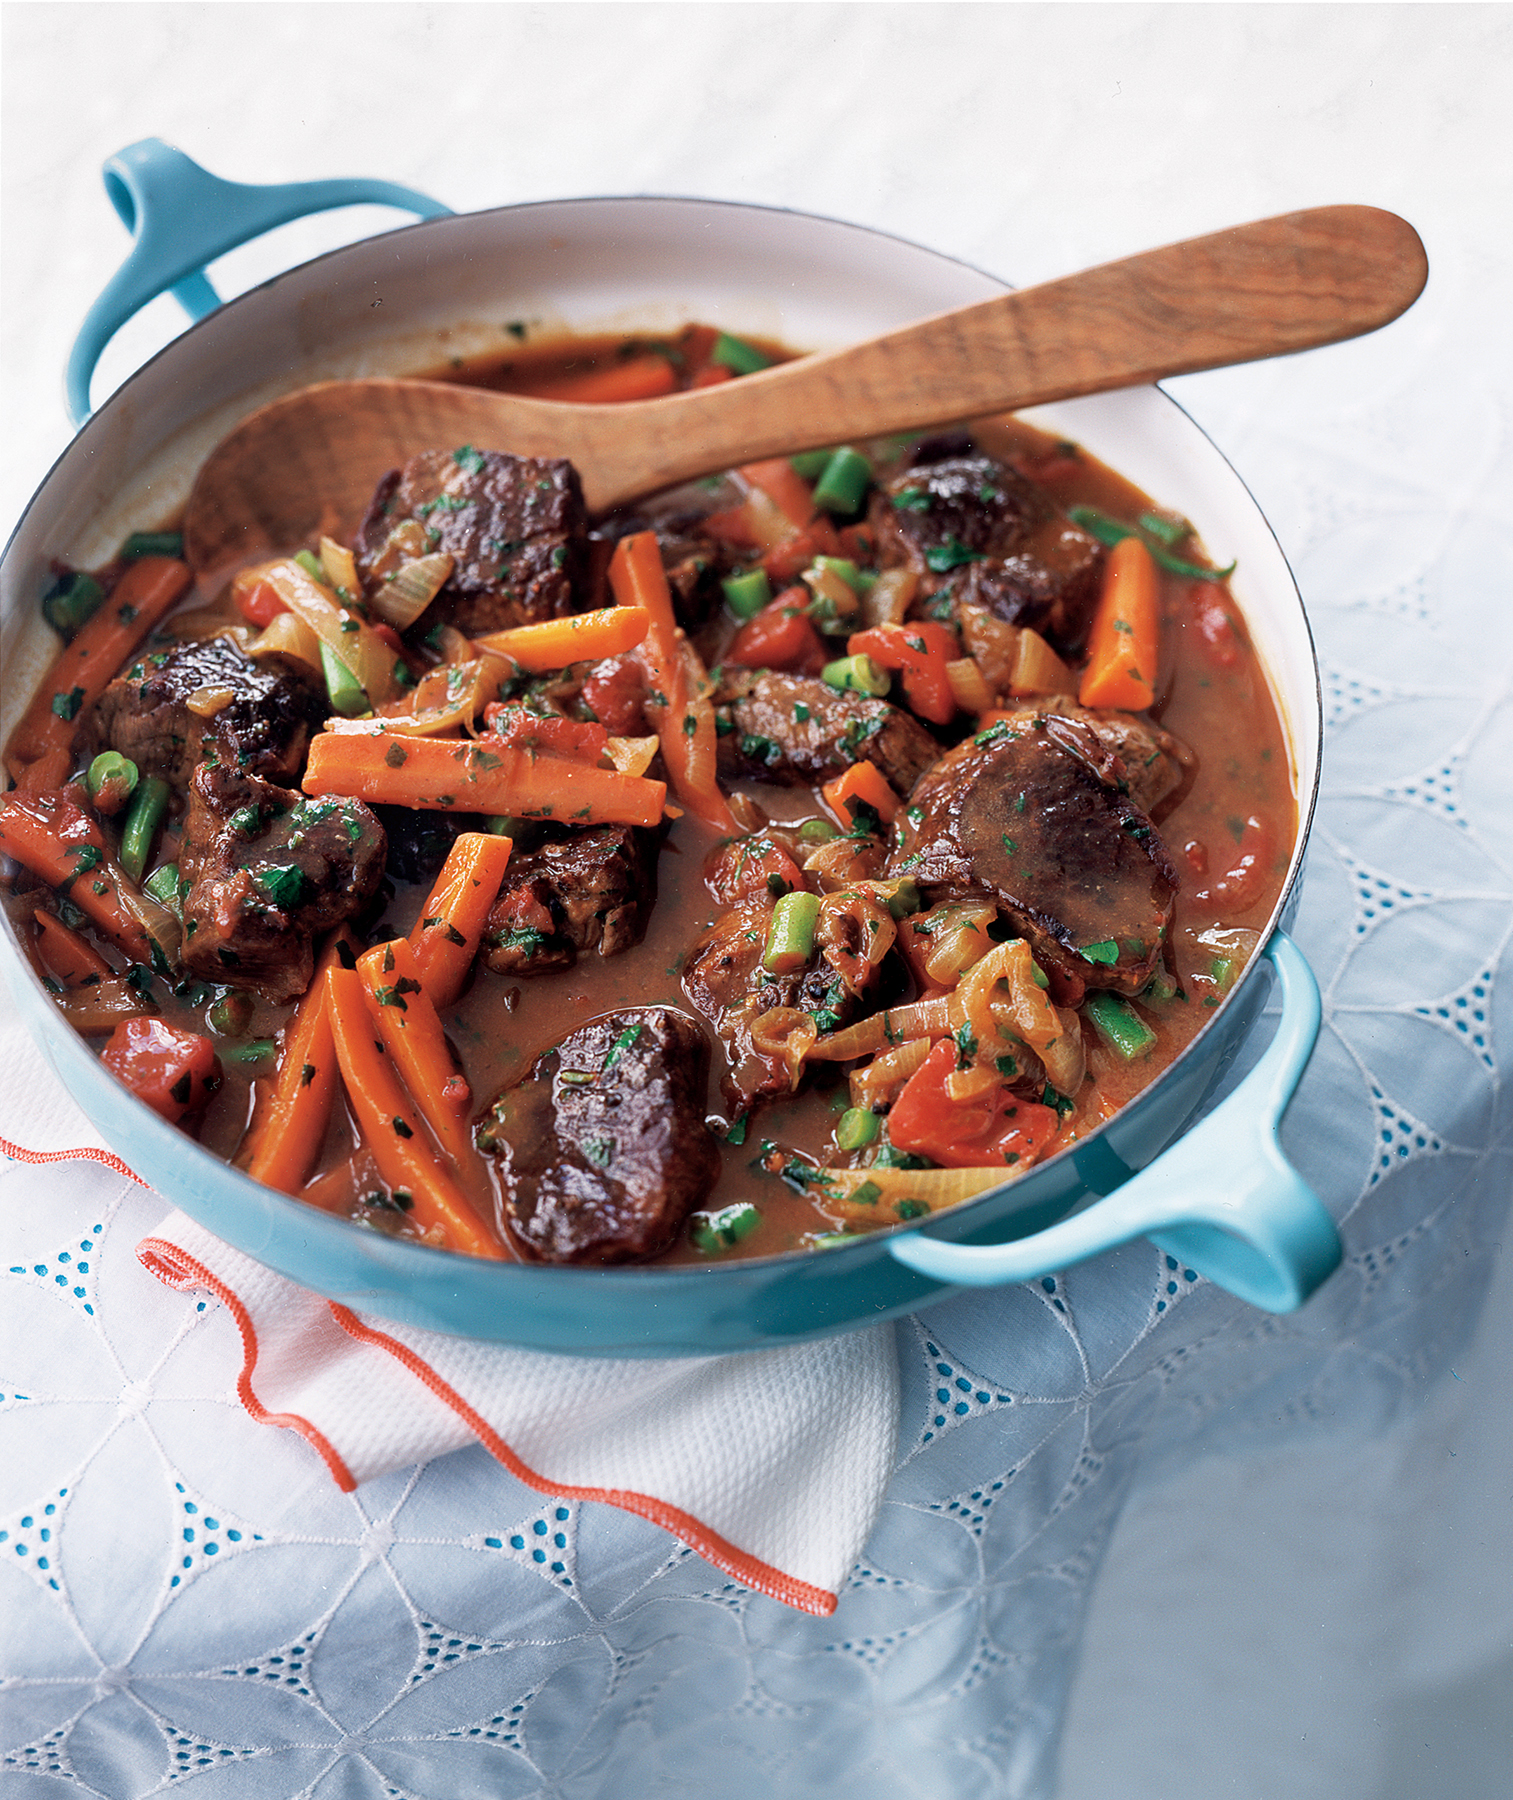 Easy Supper Ideas: Quick Spring Lamb and Vegetable Stew